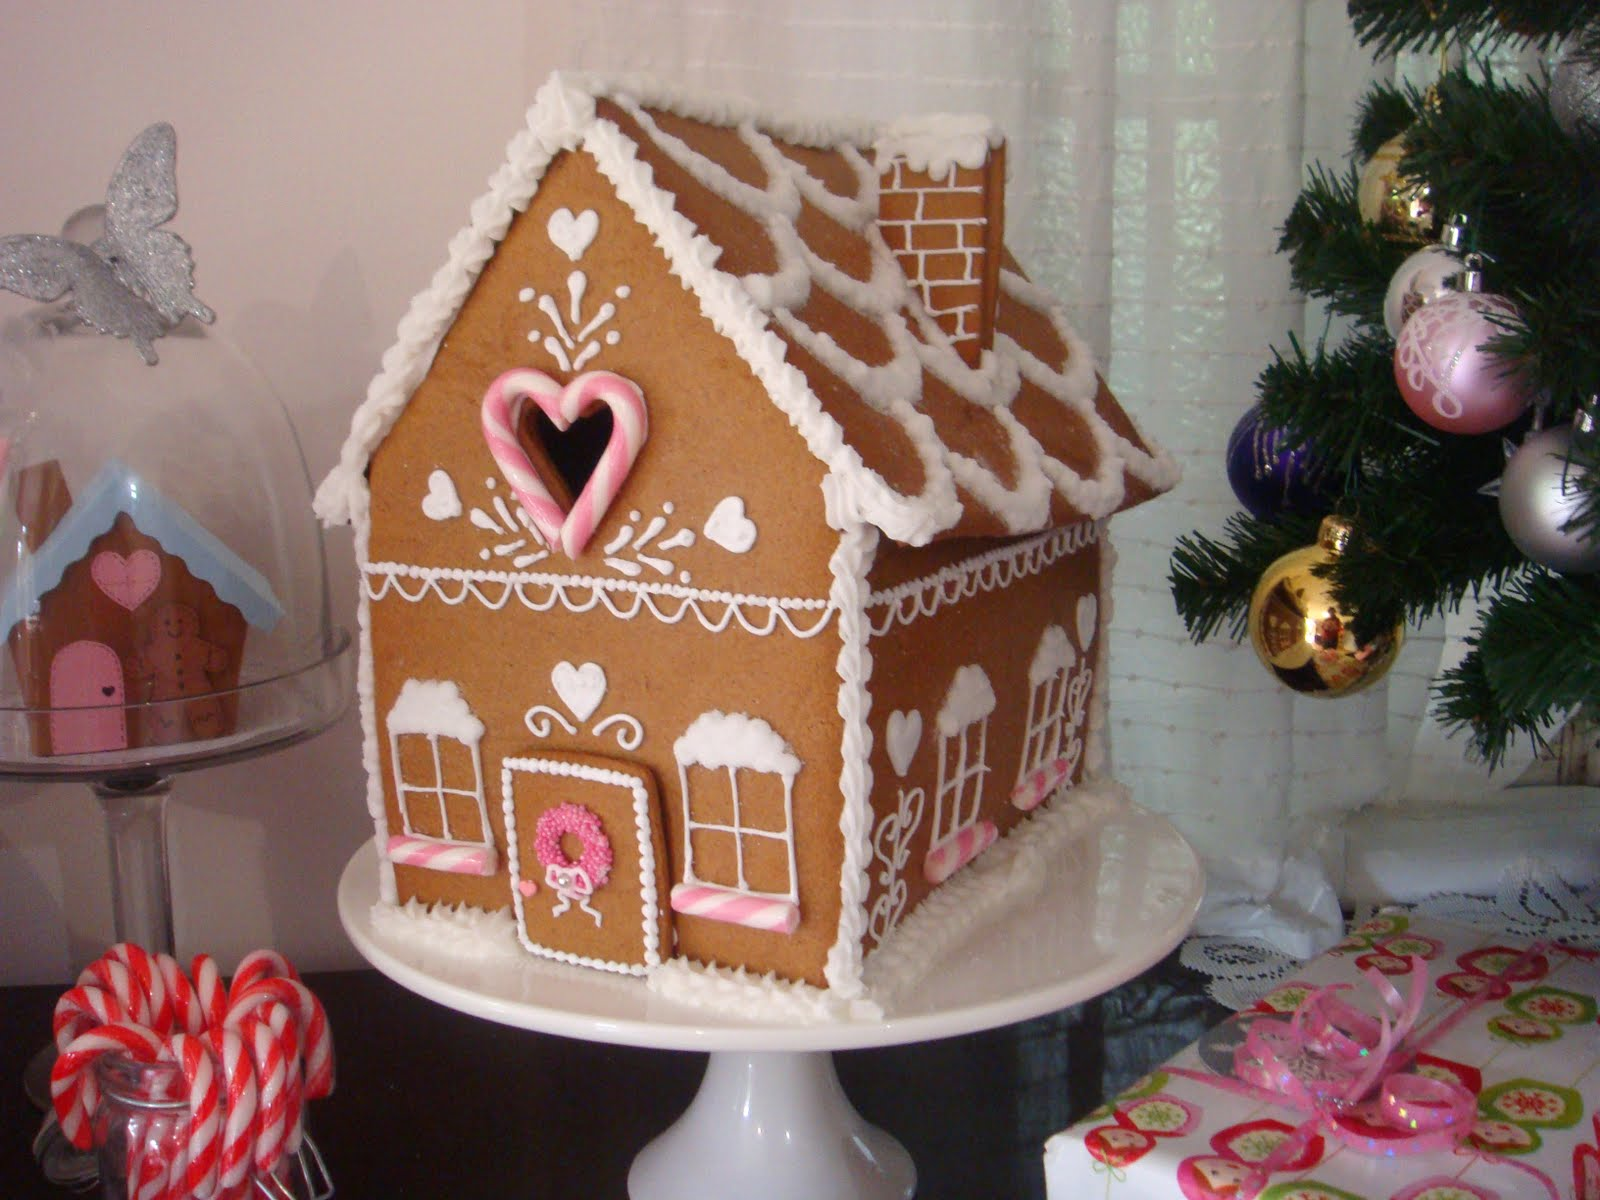 How To Make A Gingerbread House | Search Results | All Simply Cooking ...